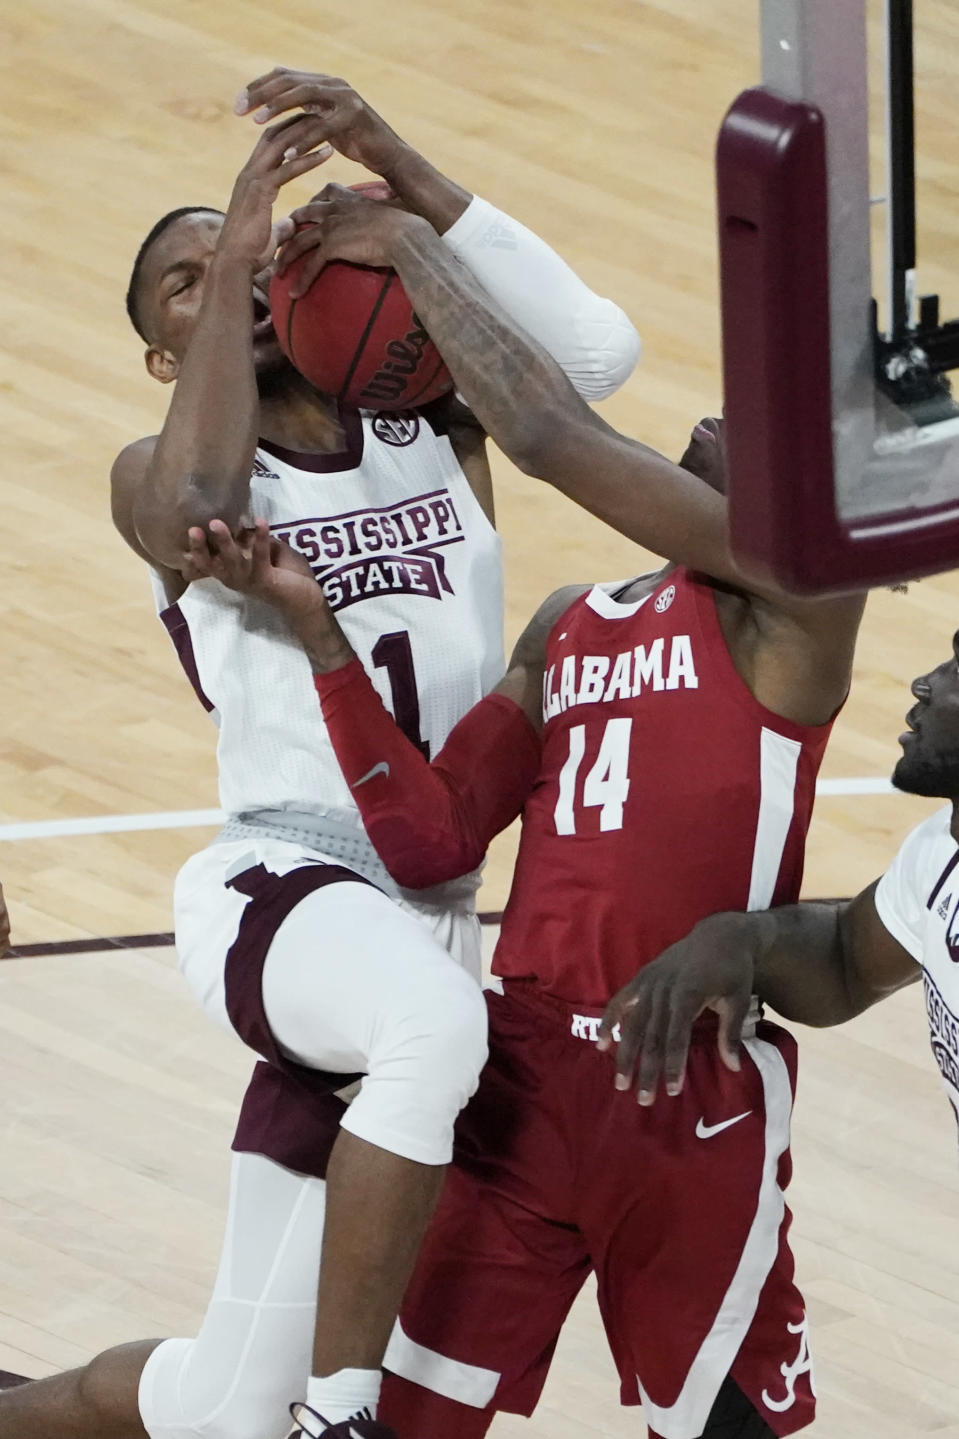 Mississippi State guard Iverson Molinar (1) has the ball stripped away by Alabama guard Keon Ellis (14) during the first half of an NCAA college basketball game in Starkville, Miss., Saturday, Feb. 27, 2021. (AP Photo/Rogelio V. Solis)